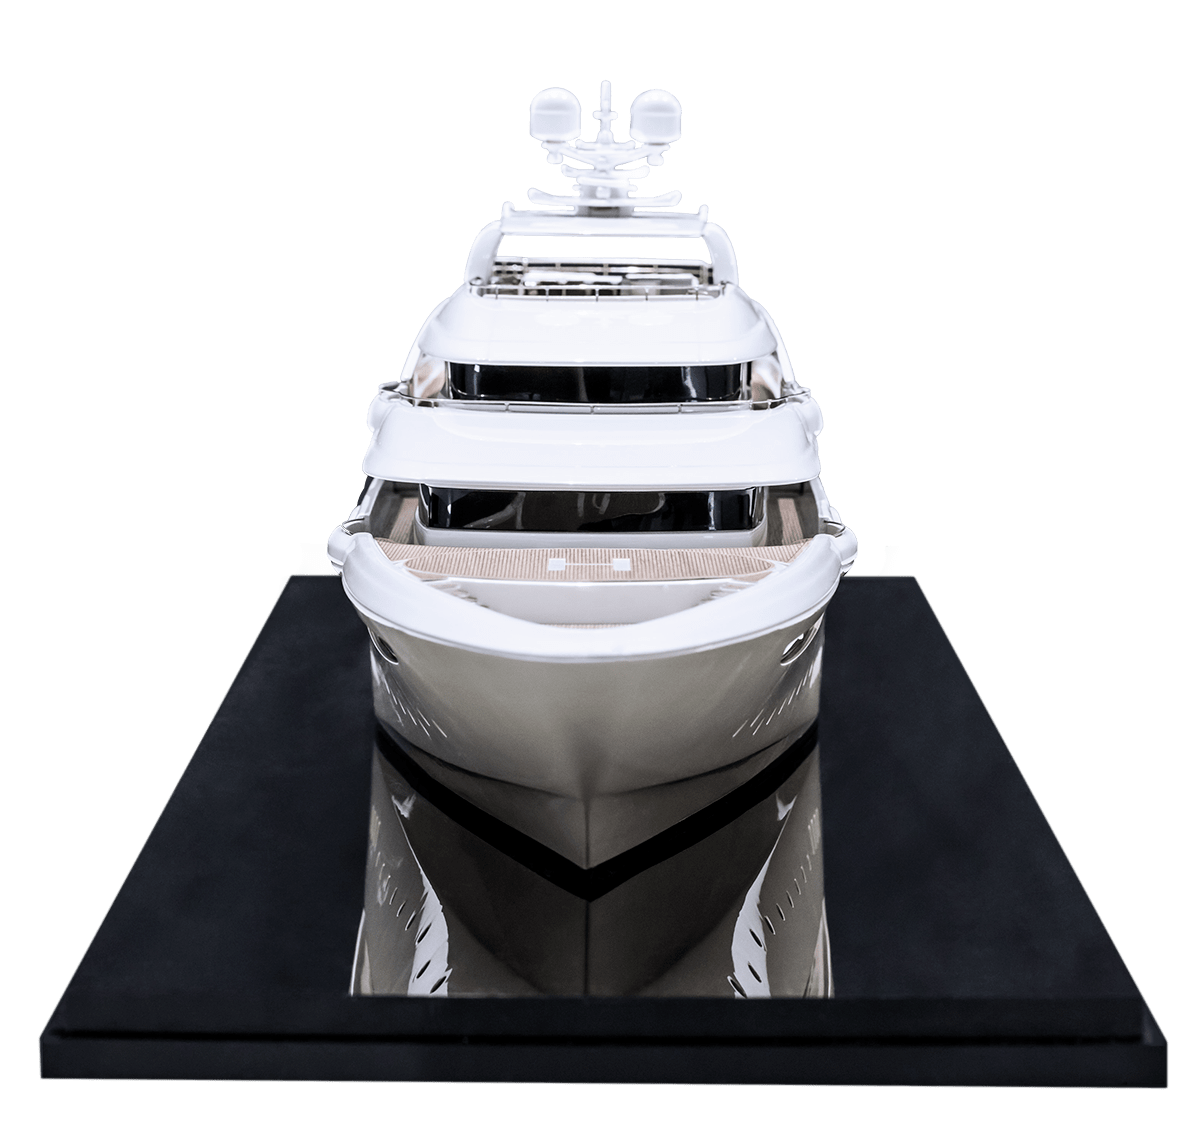 golden yacht model maker group